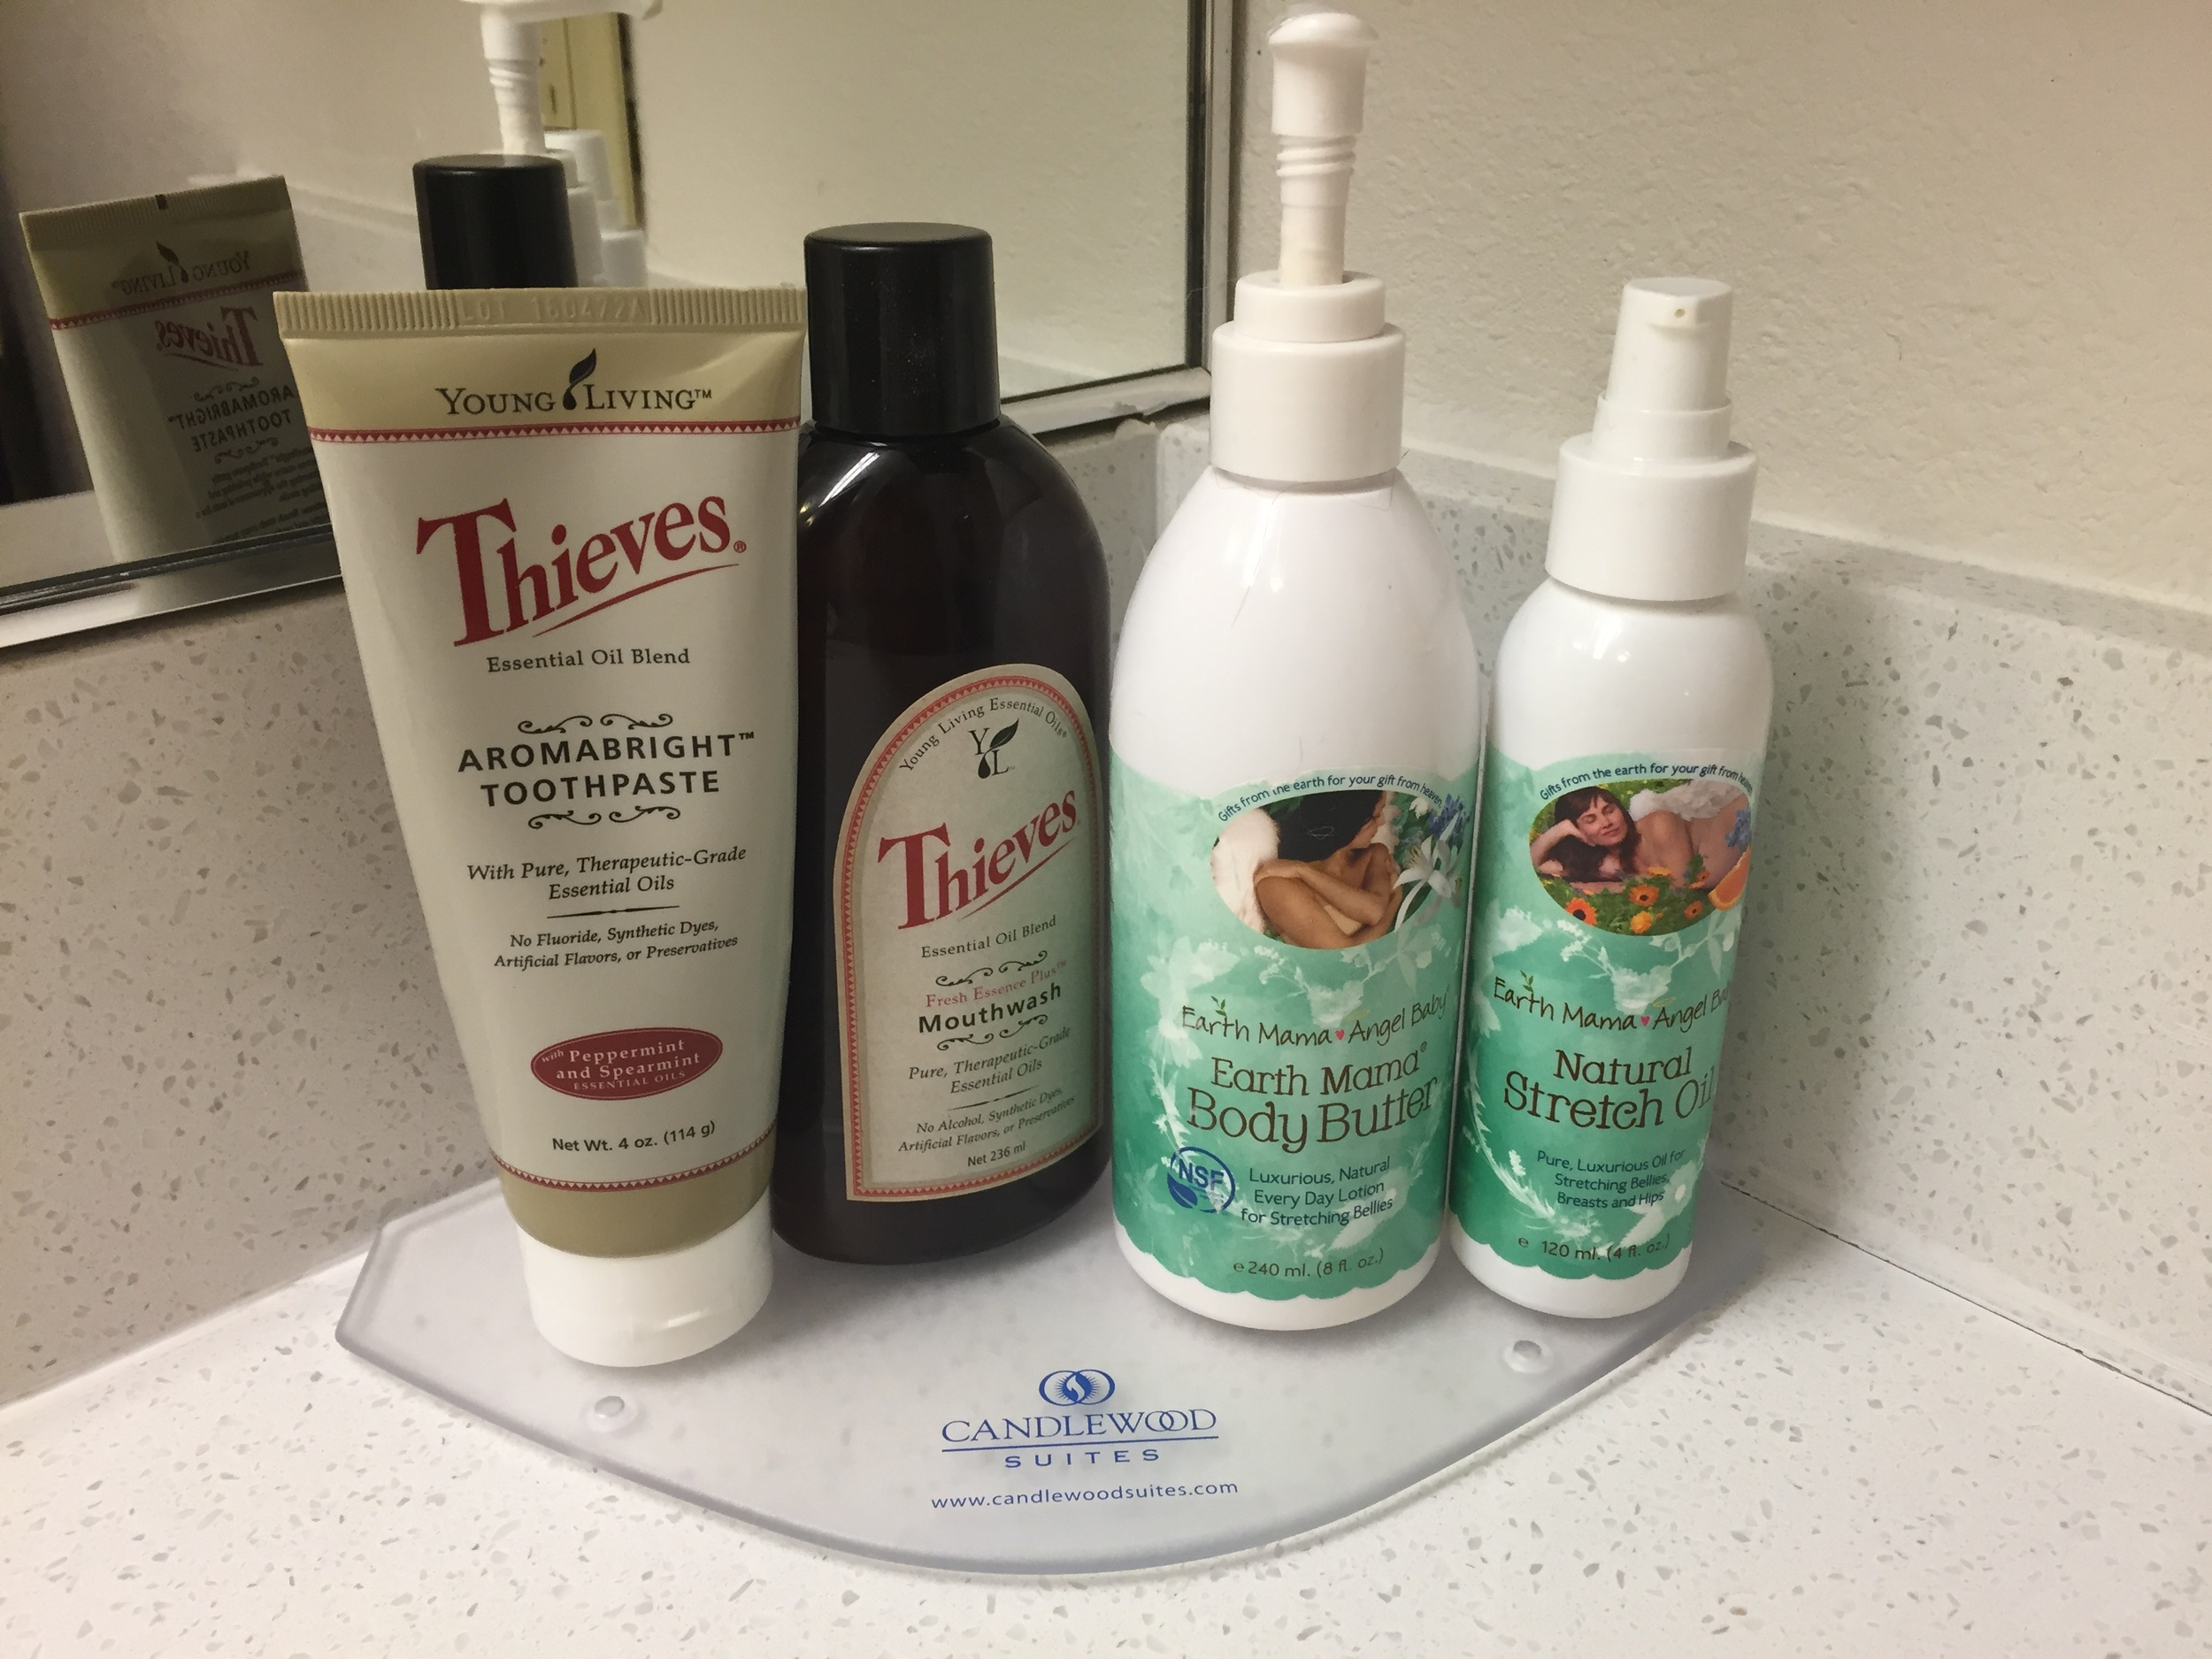 My travel essentials in our hotel room in Houston, TX